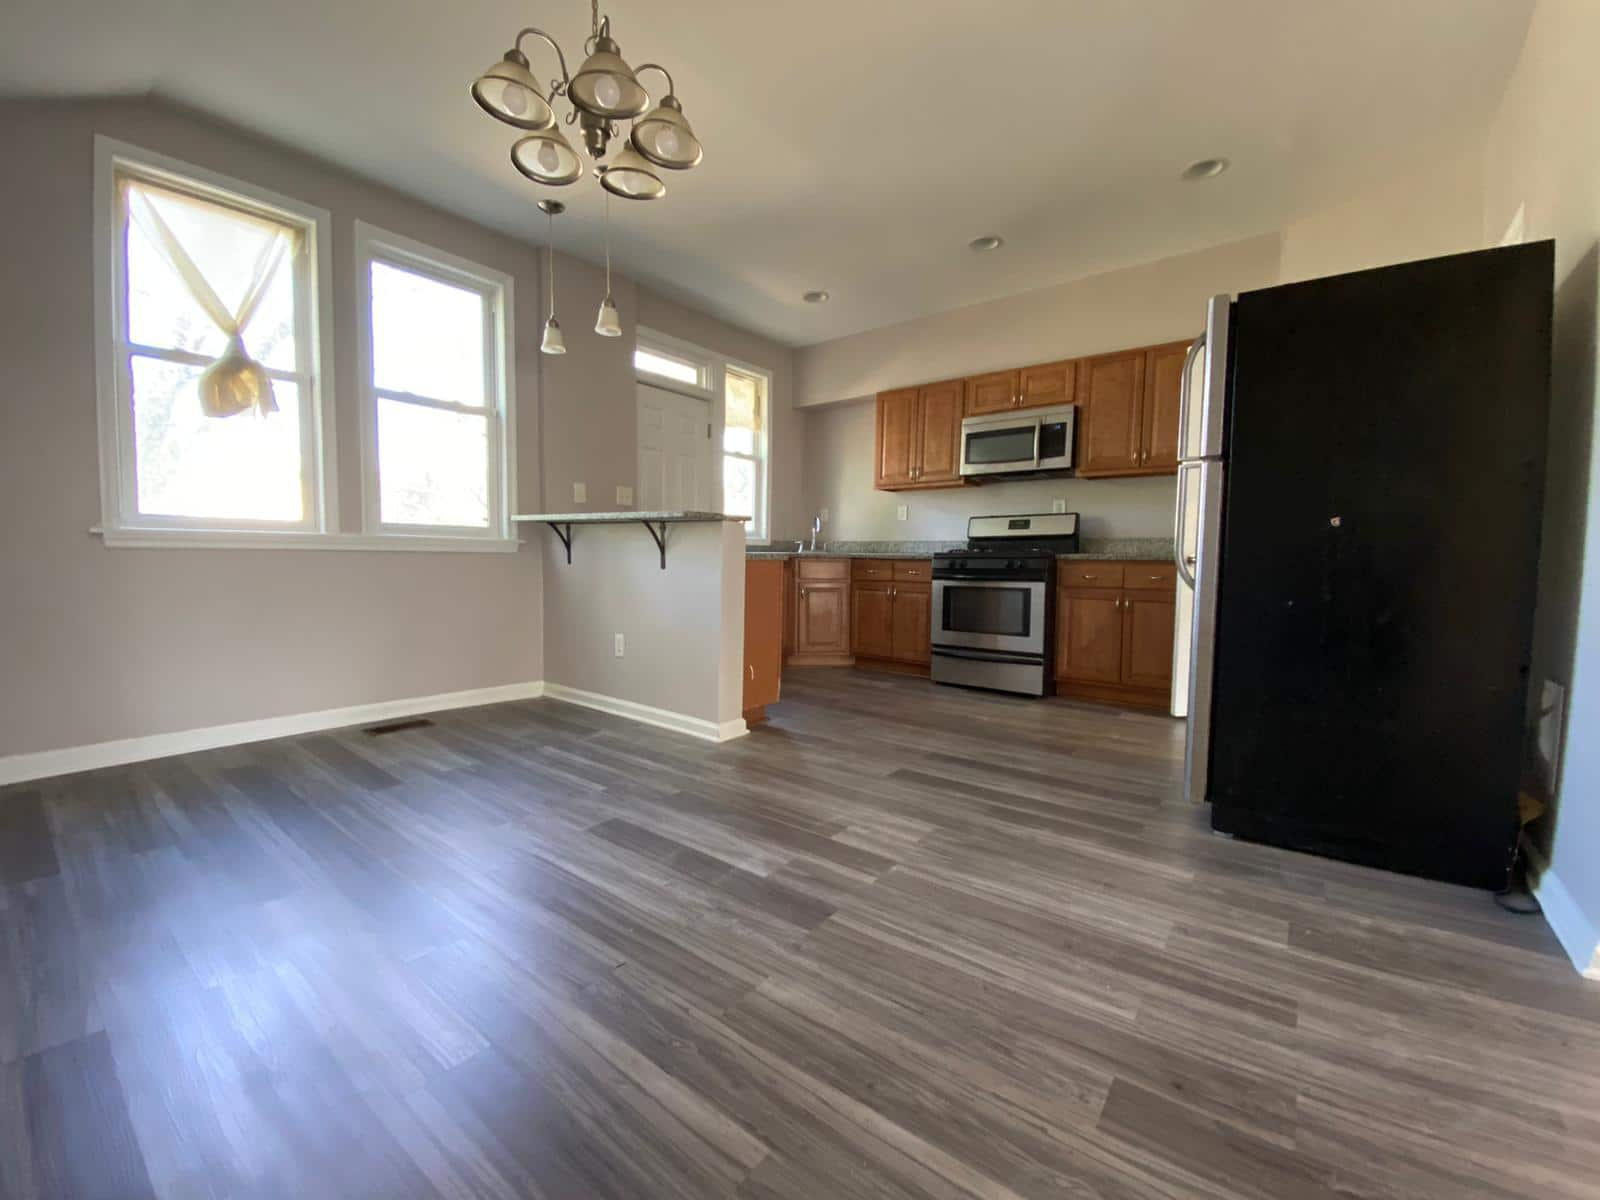 Open Plan Layout at 534 Beaumont Ave